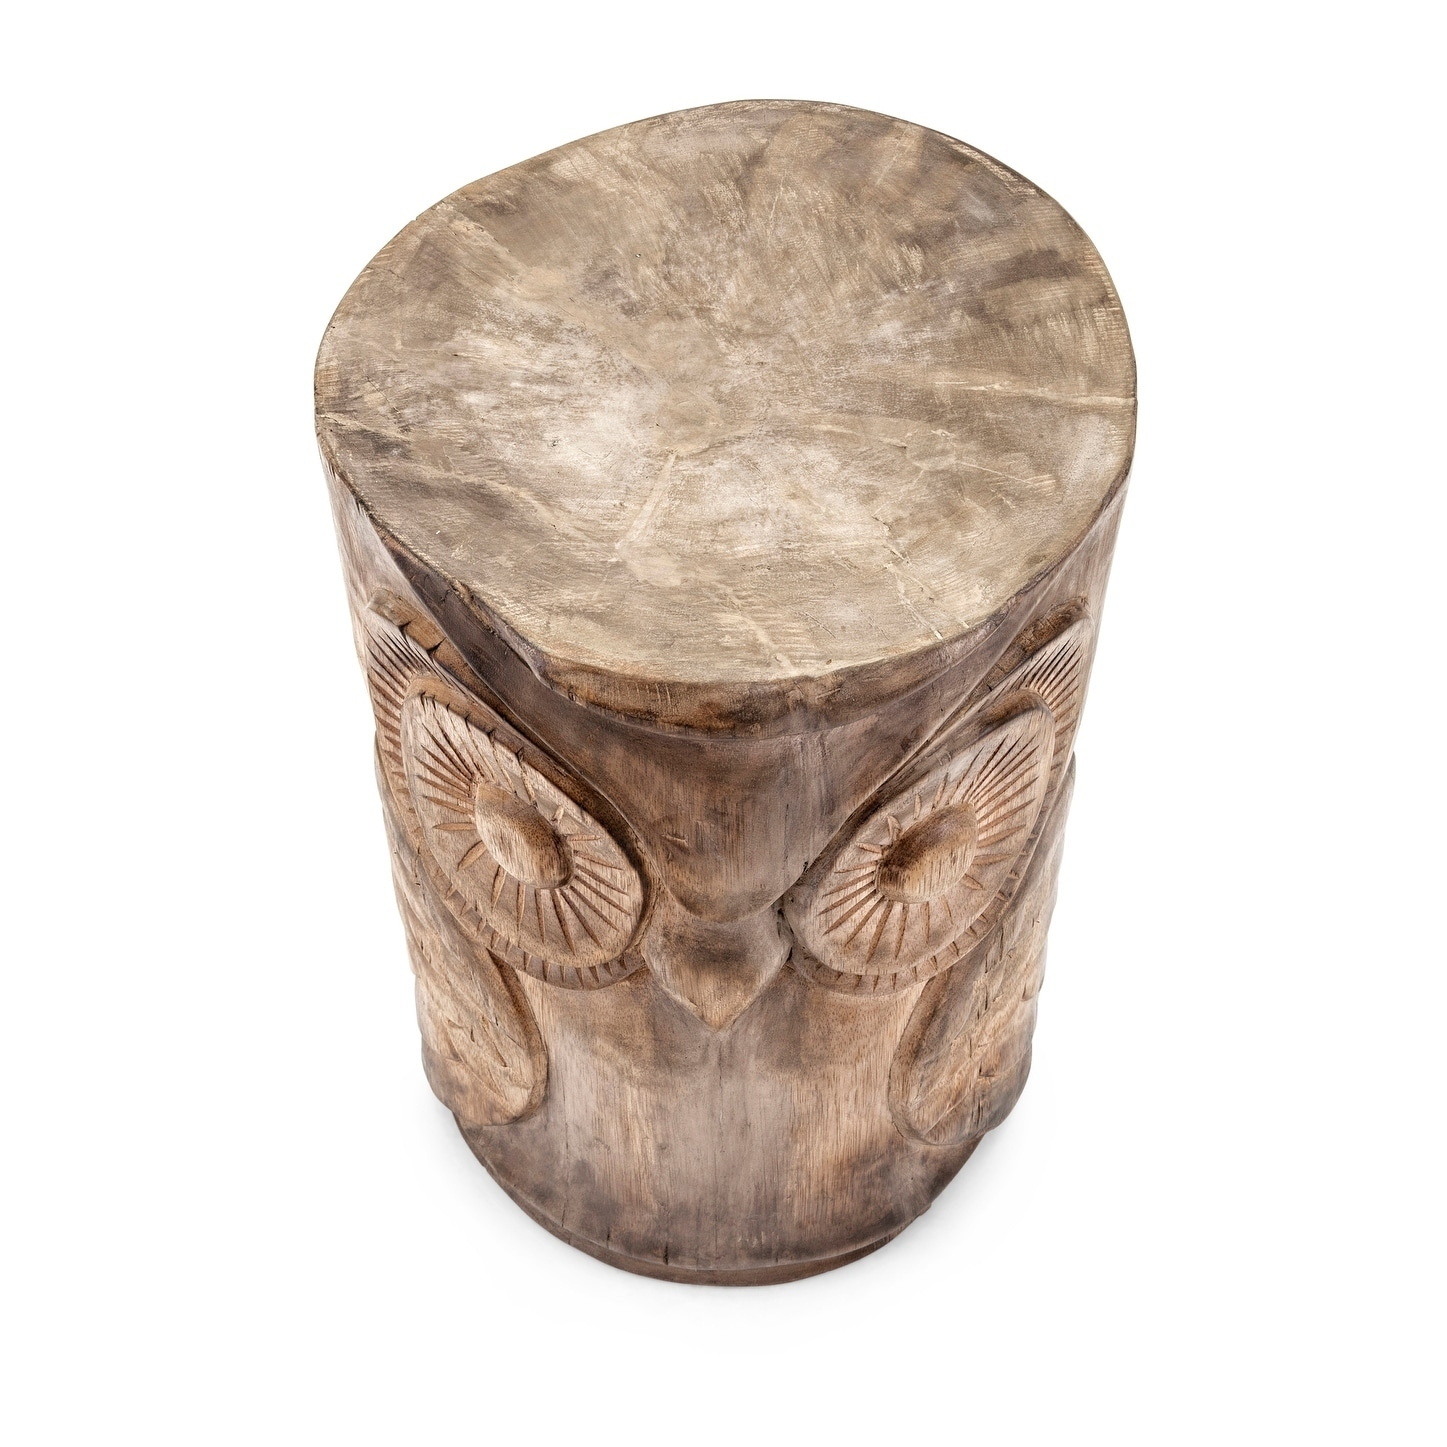 free home today garden overstock stool com wooden product shipping brown and owl natural